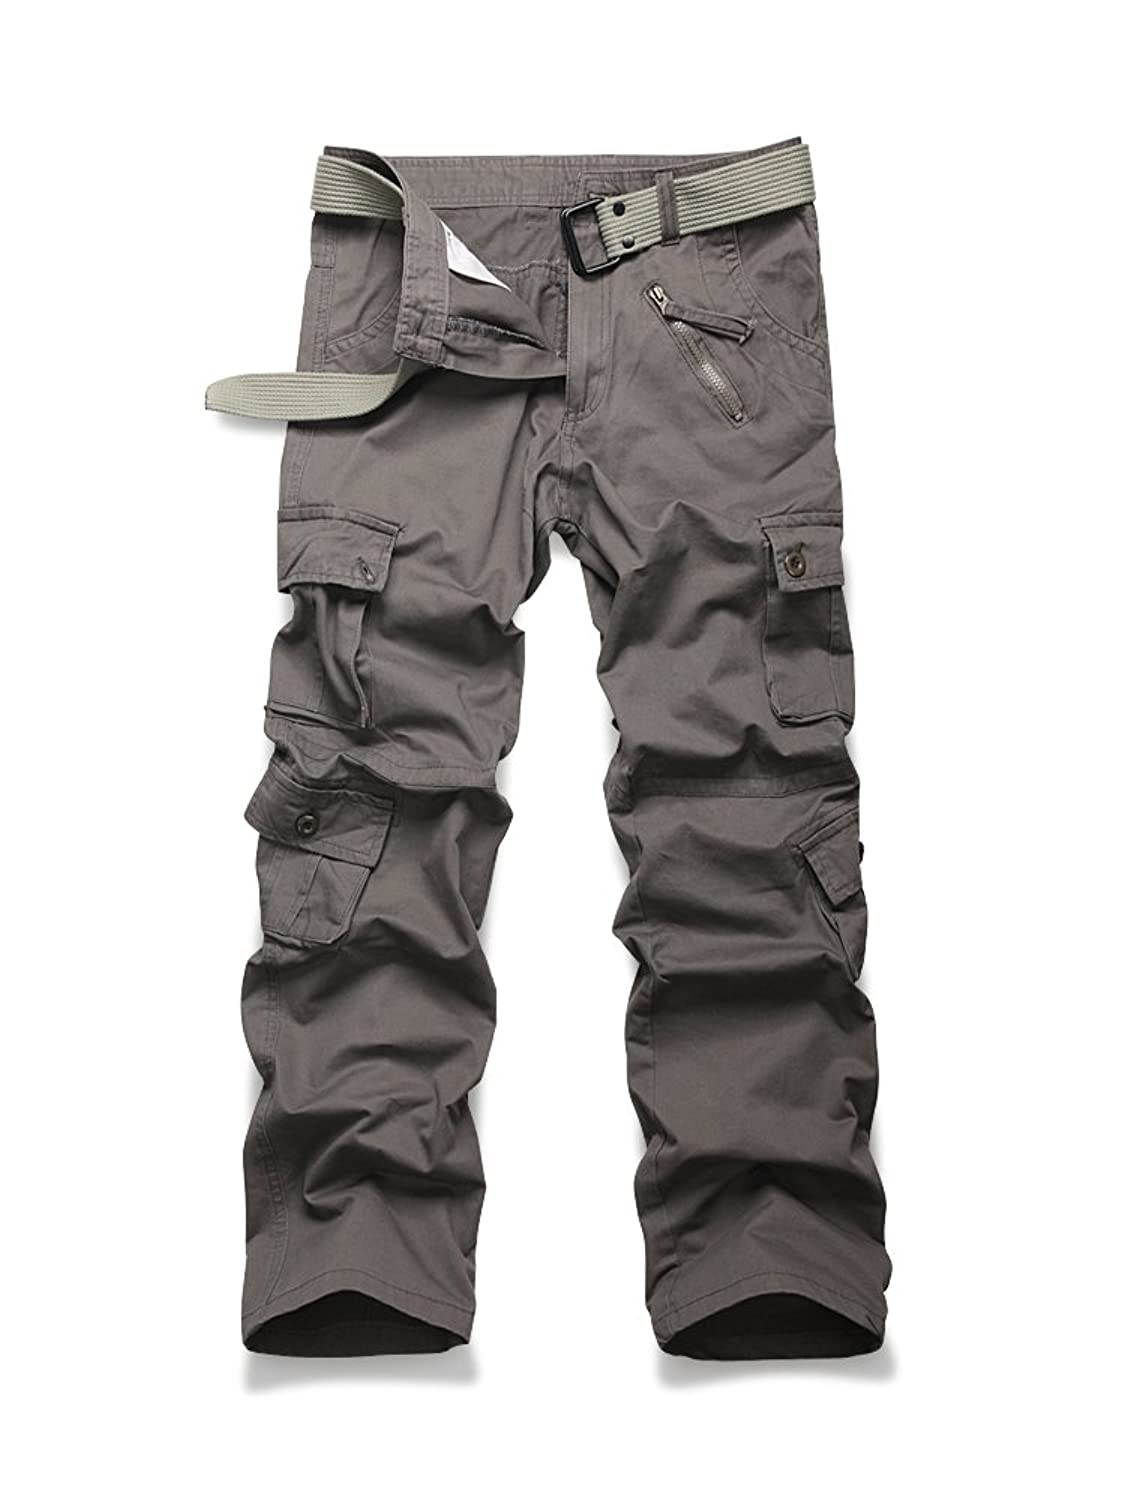 OCHENTA PANTS メンズ B079PJL7P1  #01 Grey Army Green 38